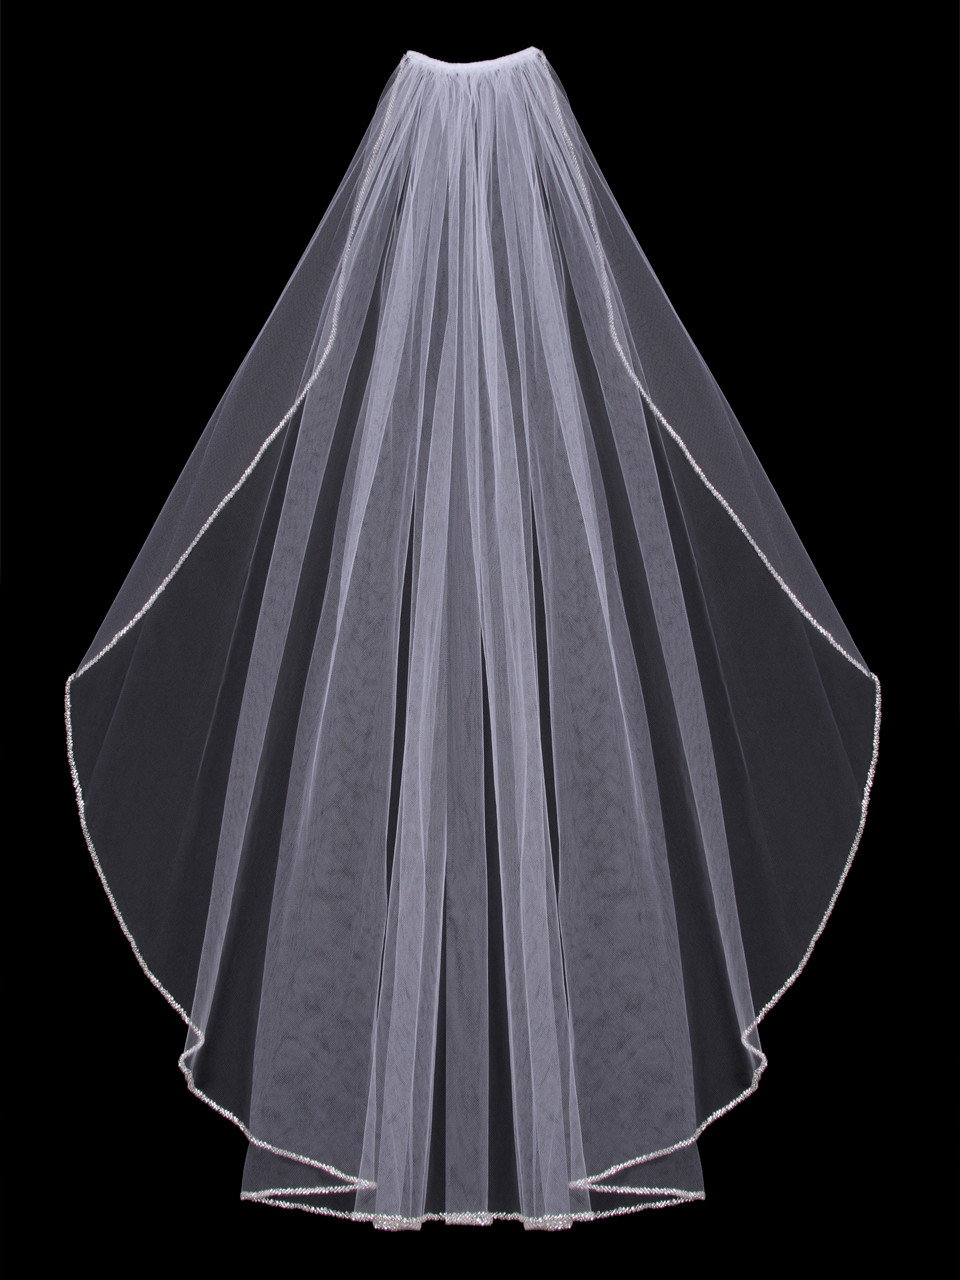 bridal veil latin singles Complete your stunning bridal look with the perfect wedding veil at david's bridal our wedding veils include various styles, including birdcage veils.